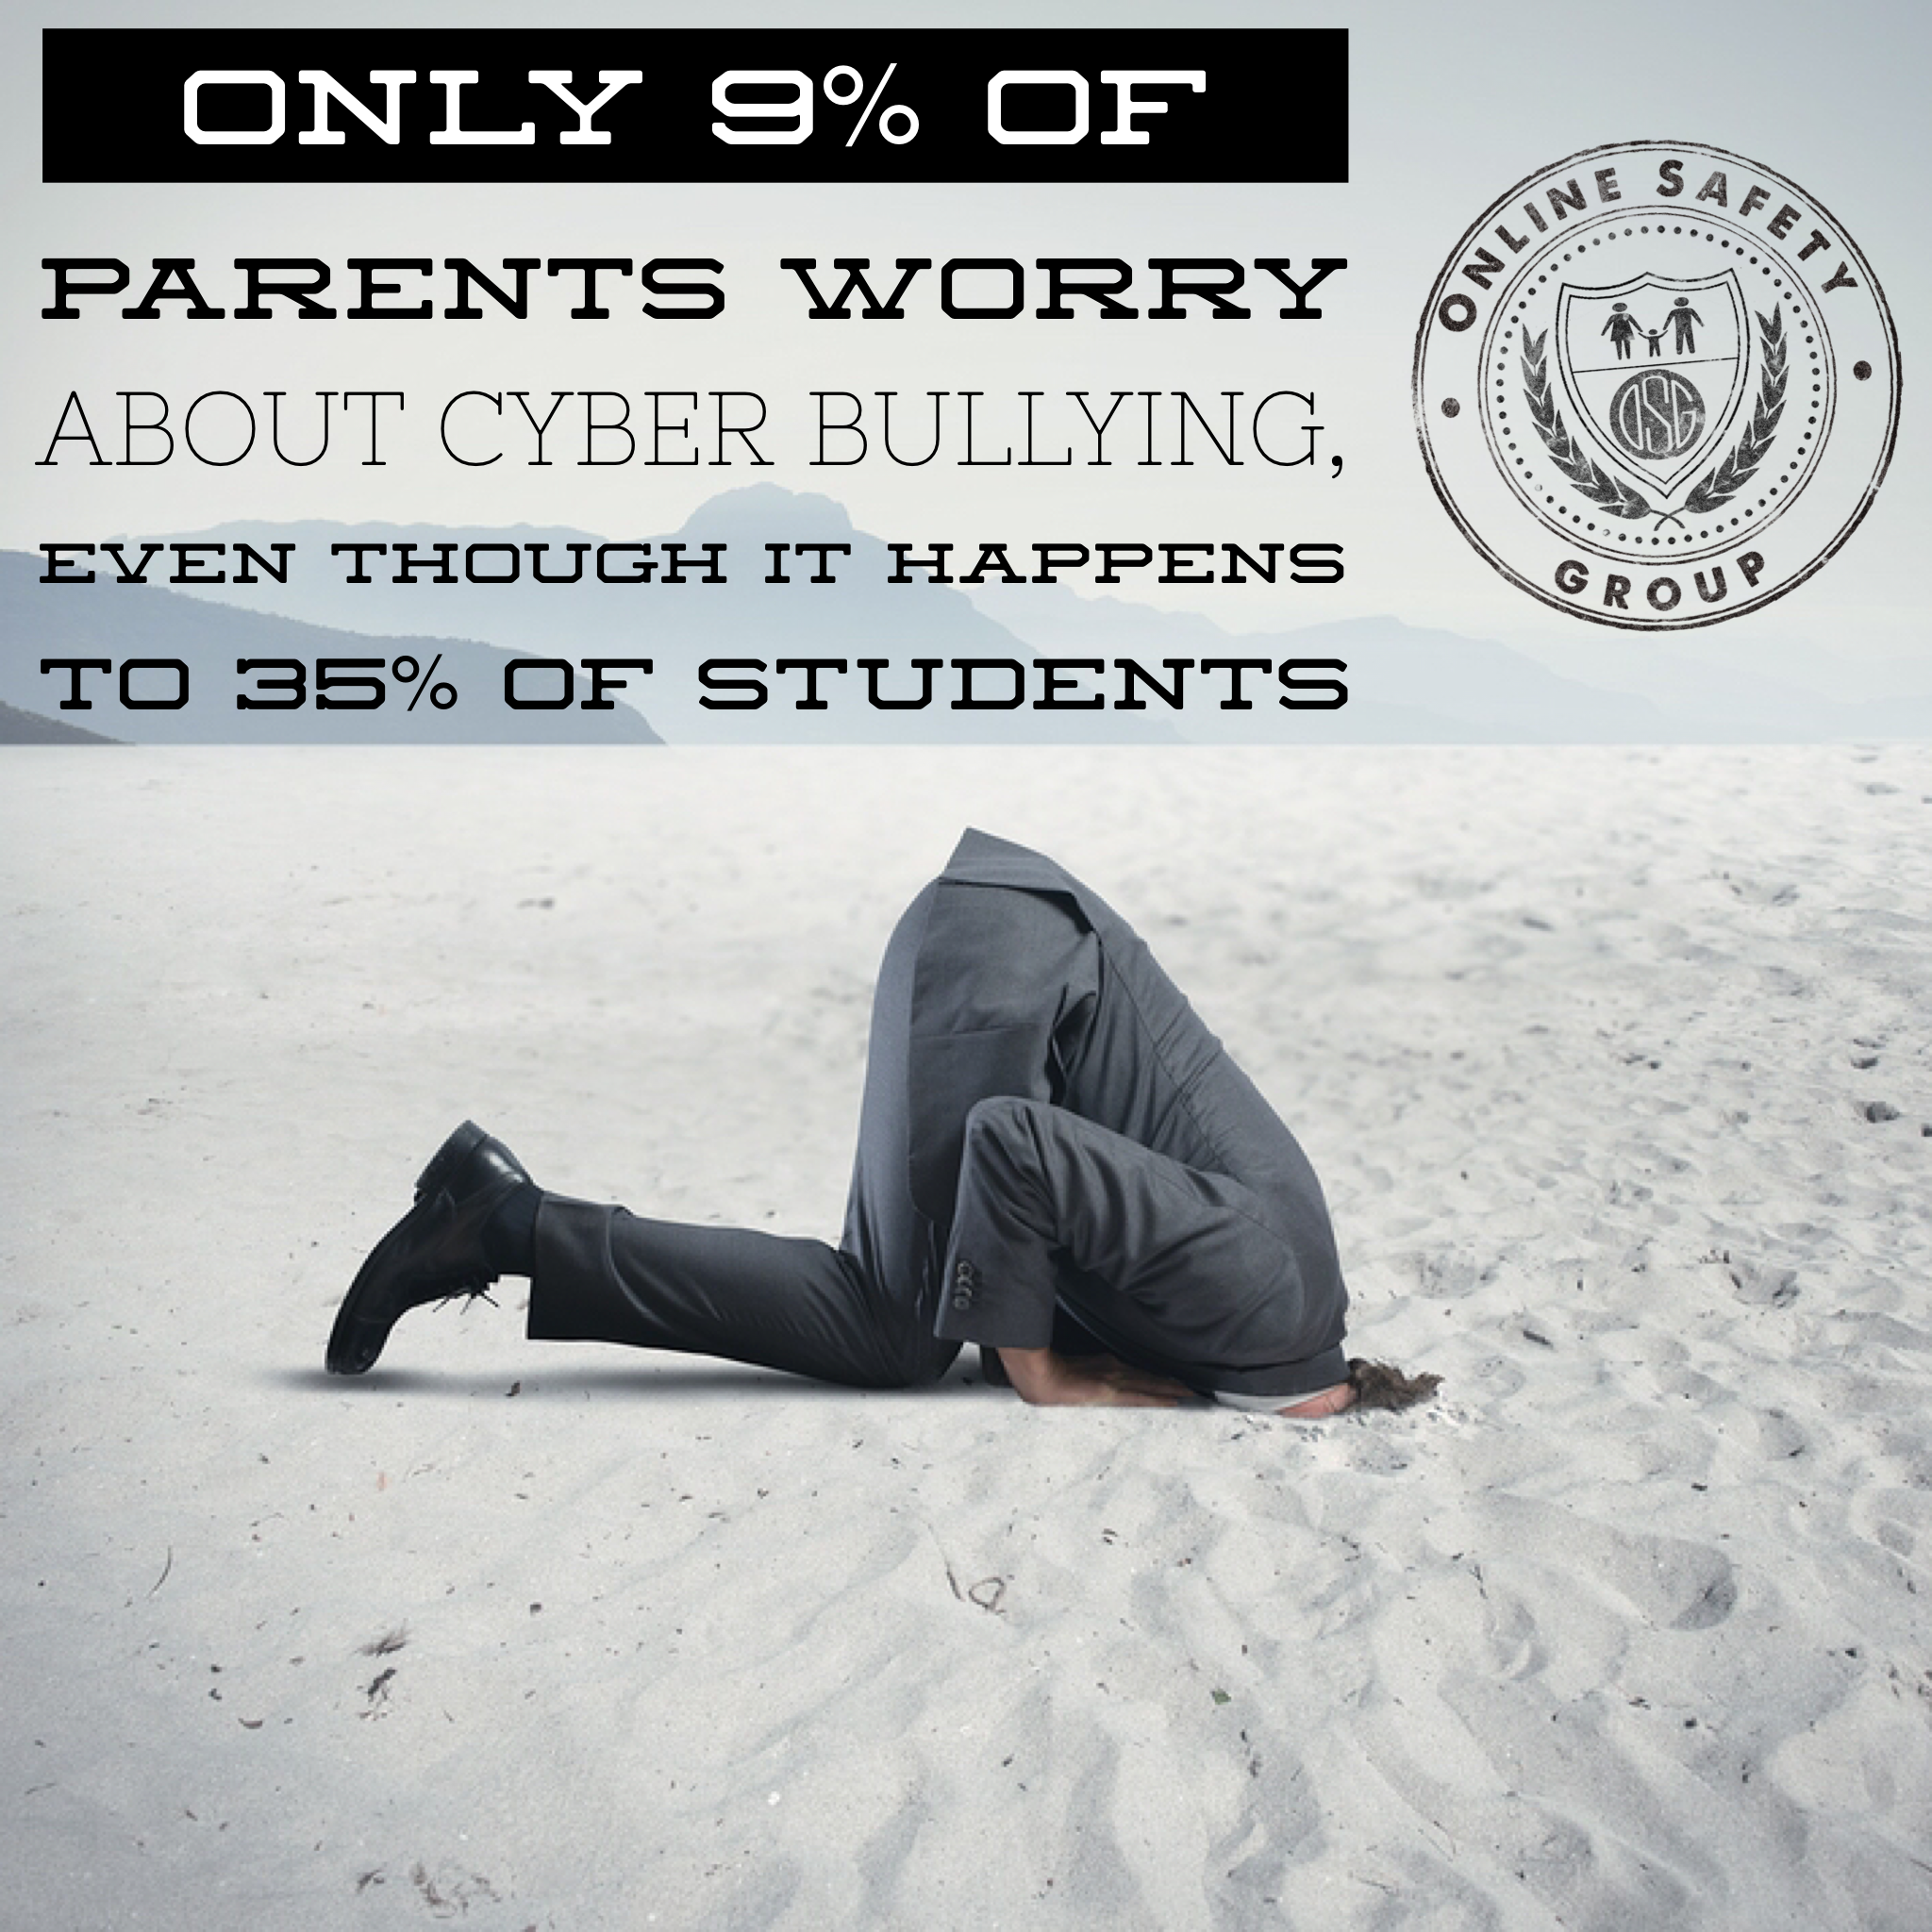 Only 9% of parents worry about cyber bullying, even though it happens to 35% of students